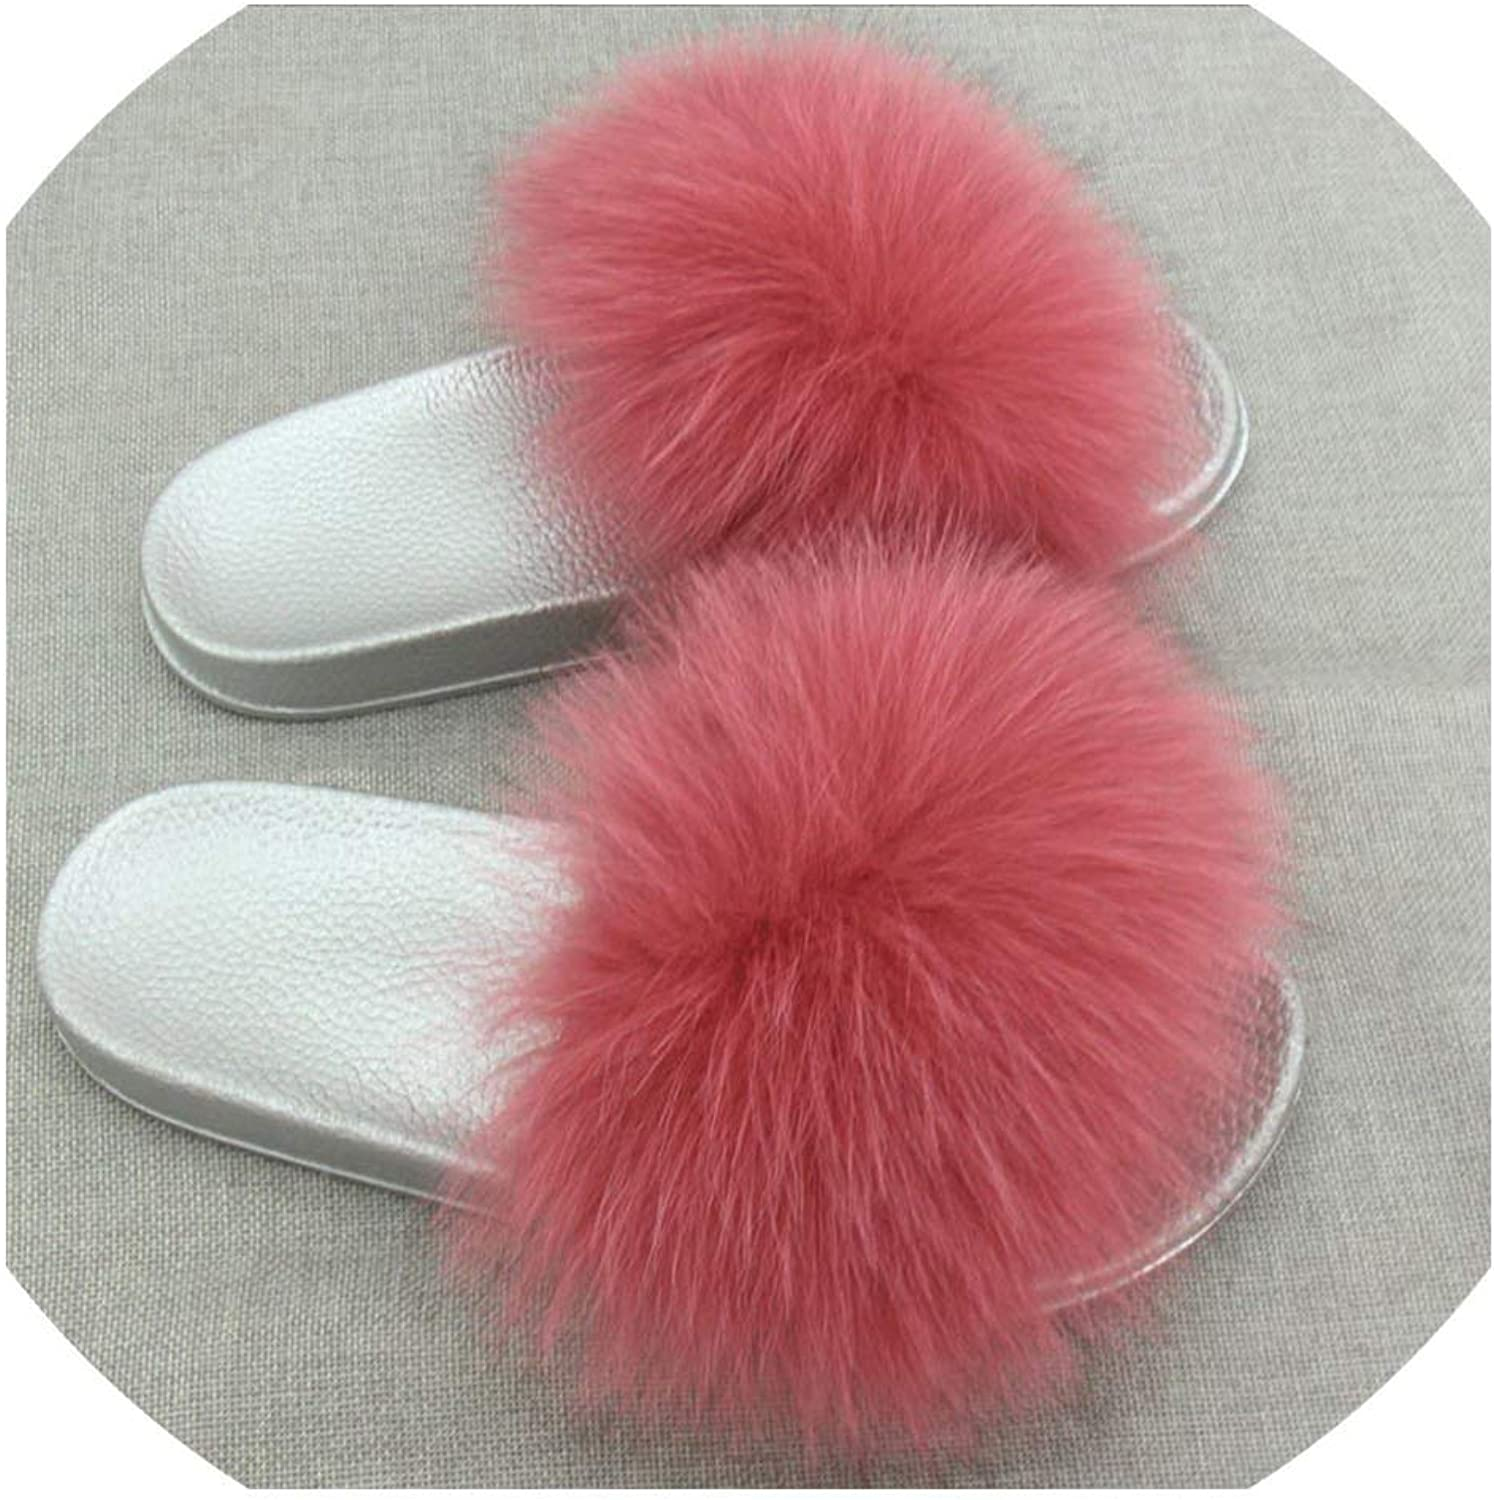 Sandals Real Hair Slippers Fox Hair Beach Sandals Fluffy Comfort Hairy Slippers Sandals 2019 Summer Models